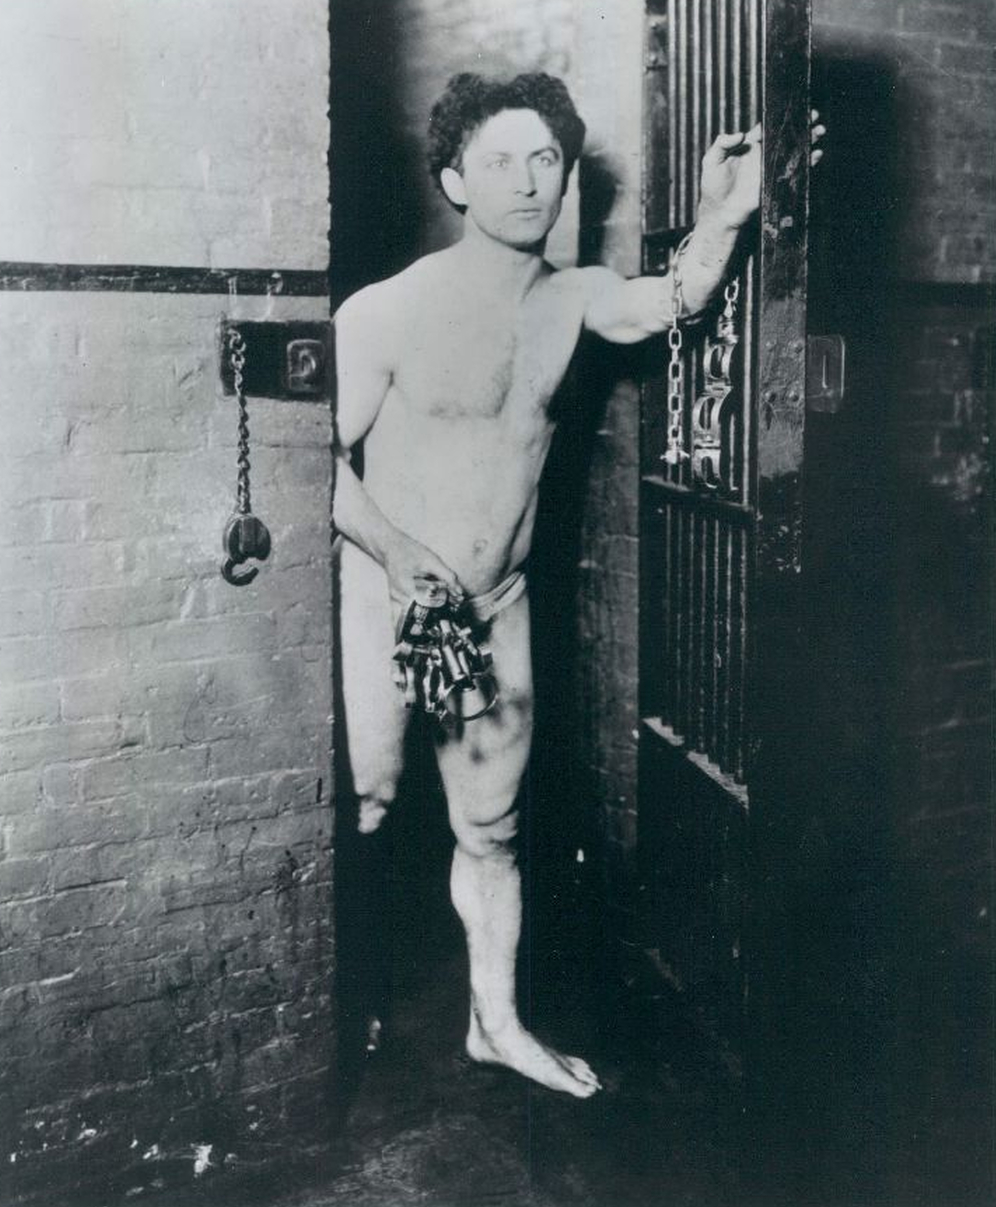 It Is Now 88 Years Since Houdini's Death, And No Word From Him Yet